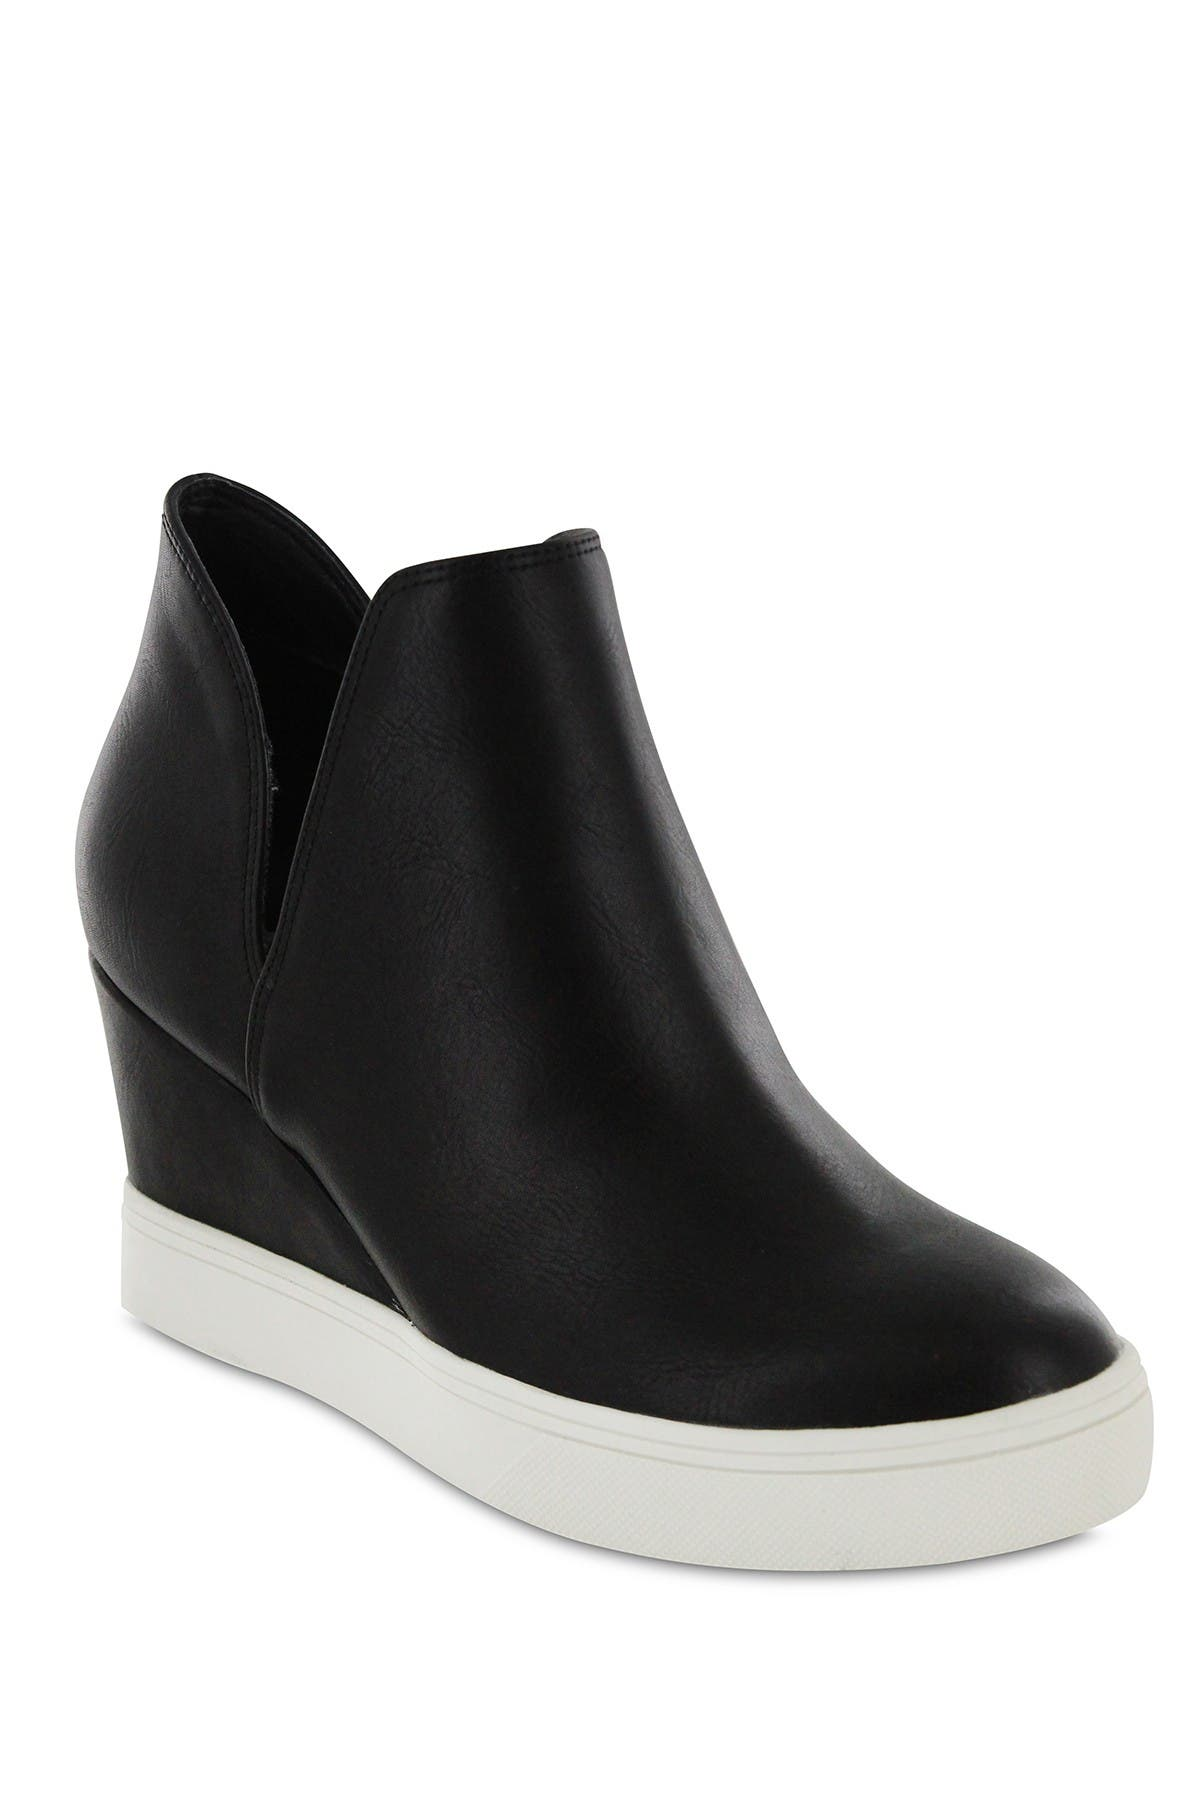 Image of MIA Kate Snake Faux Leather Wedge Sneaker